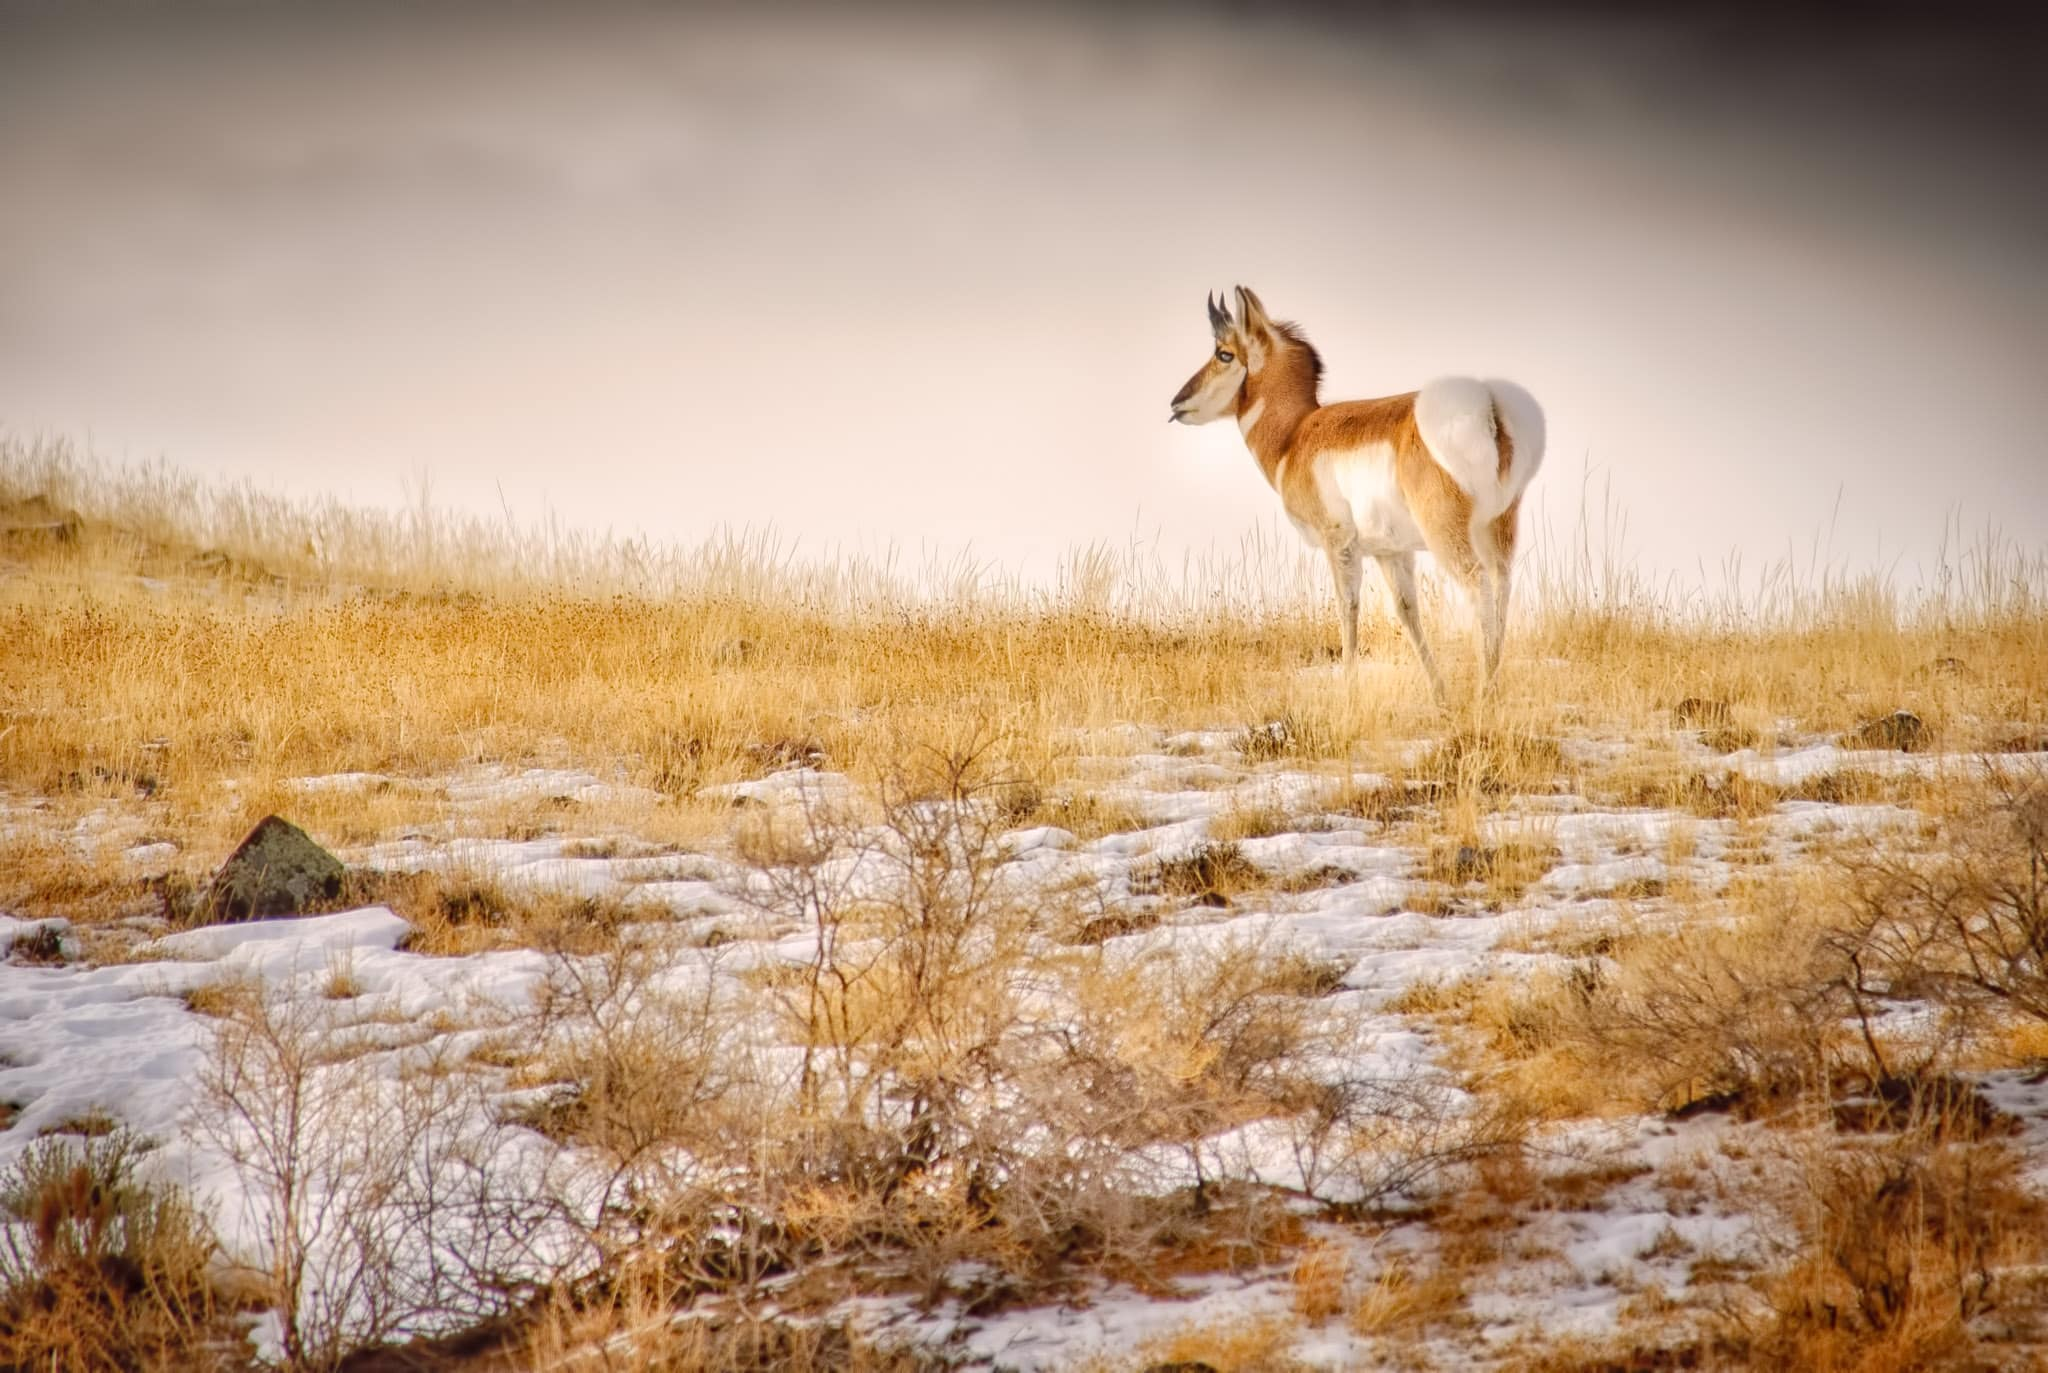 As a coyote approaches from the left, this pronghorn considered whether to find another place to graze.